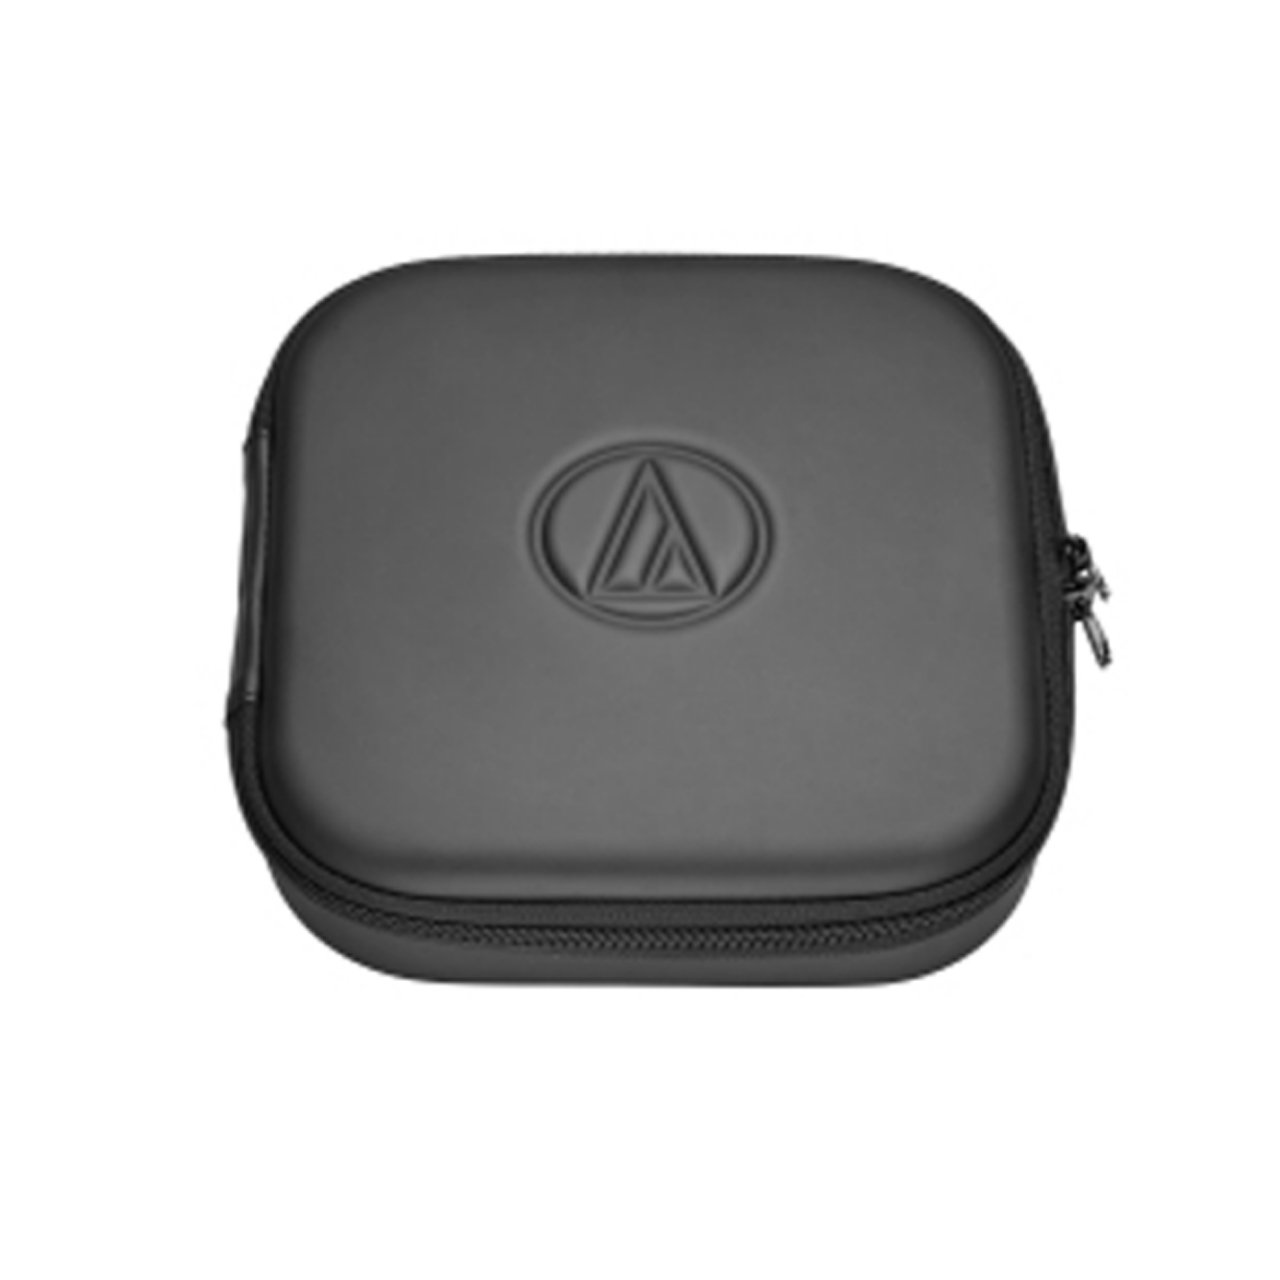 Headphone Accessories - Audio-Technica Headphone Case For M-Series Headphones